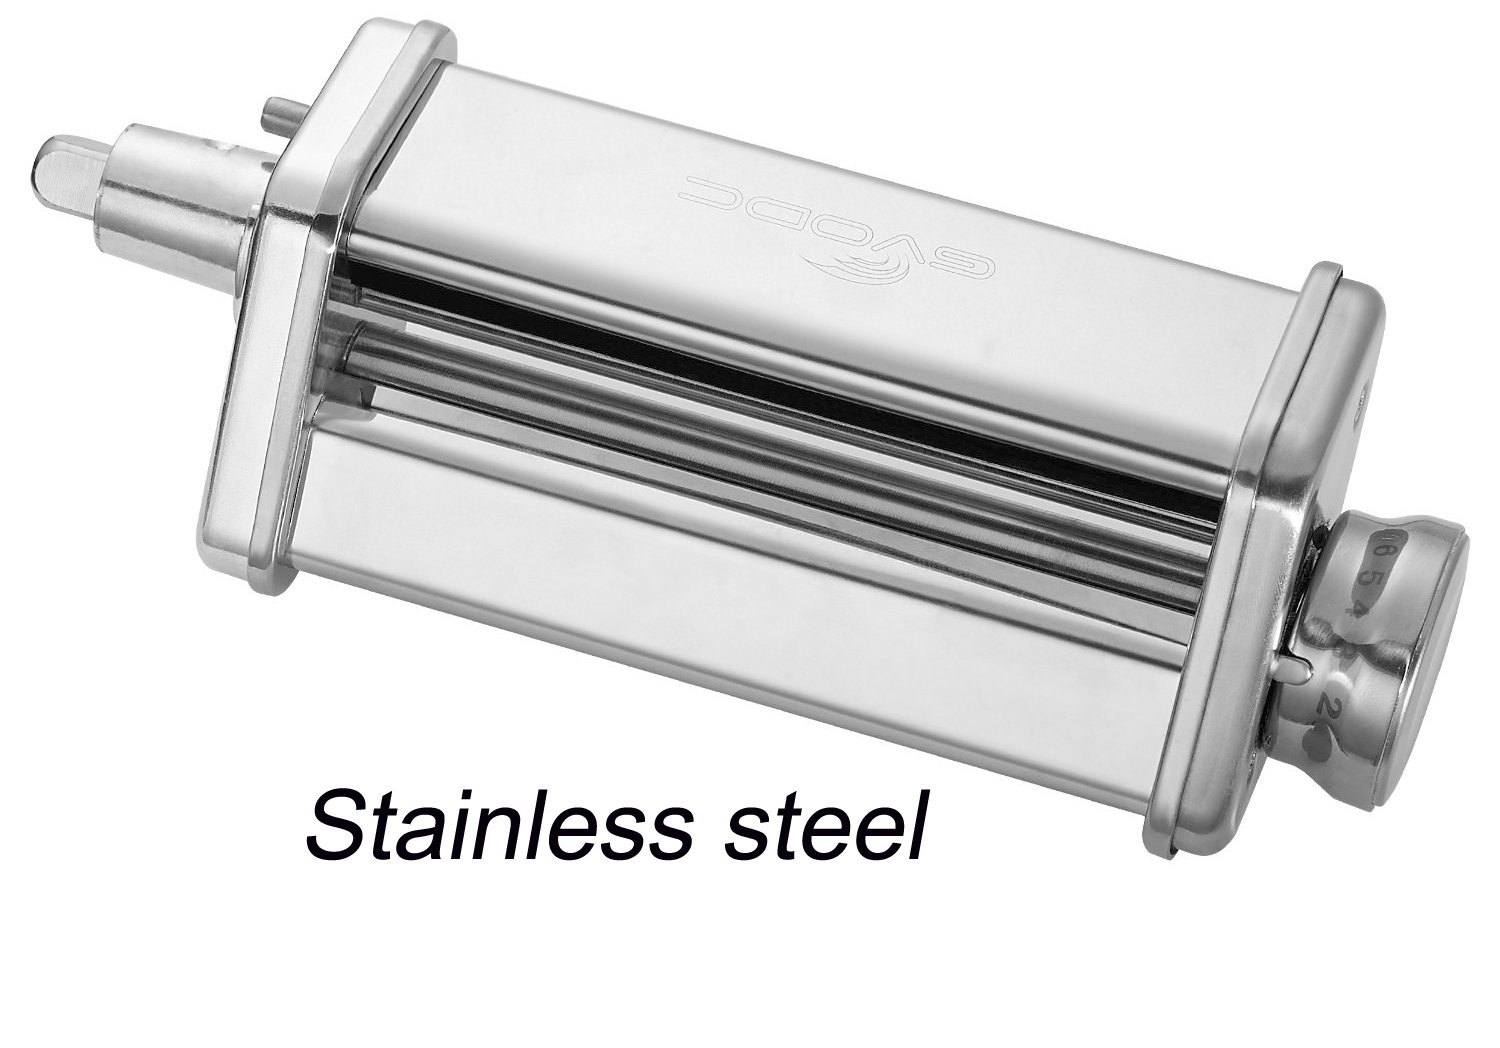 Gvode Kitchen Pasta Roller Attachment for Kitchenaid Stand Mixer,Stainless Steel,mixer accessory